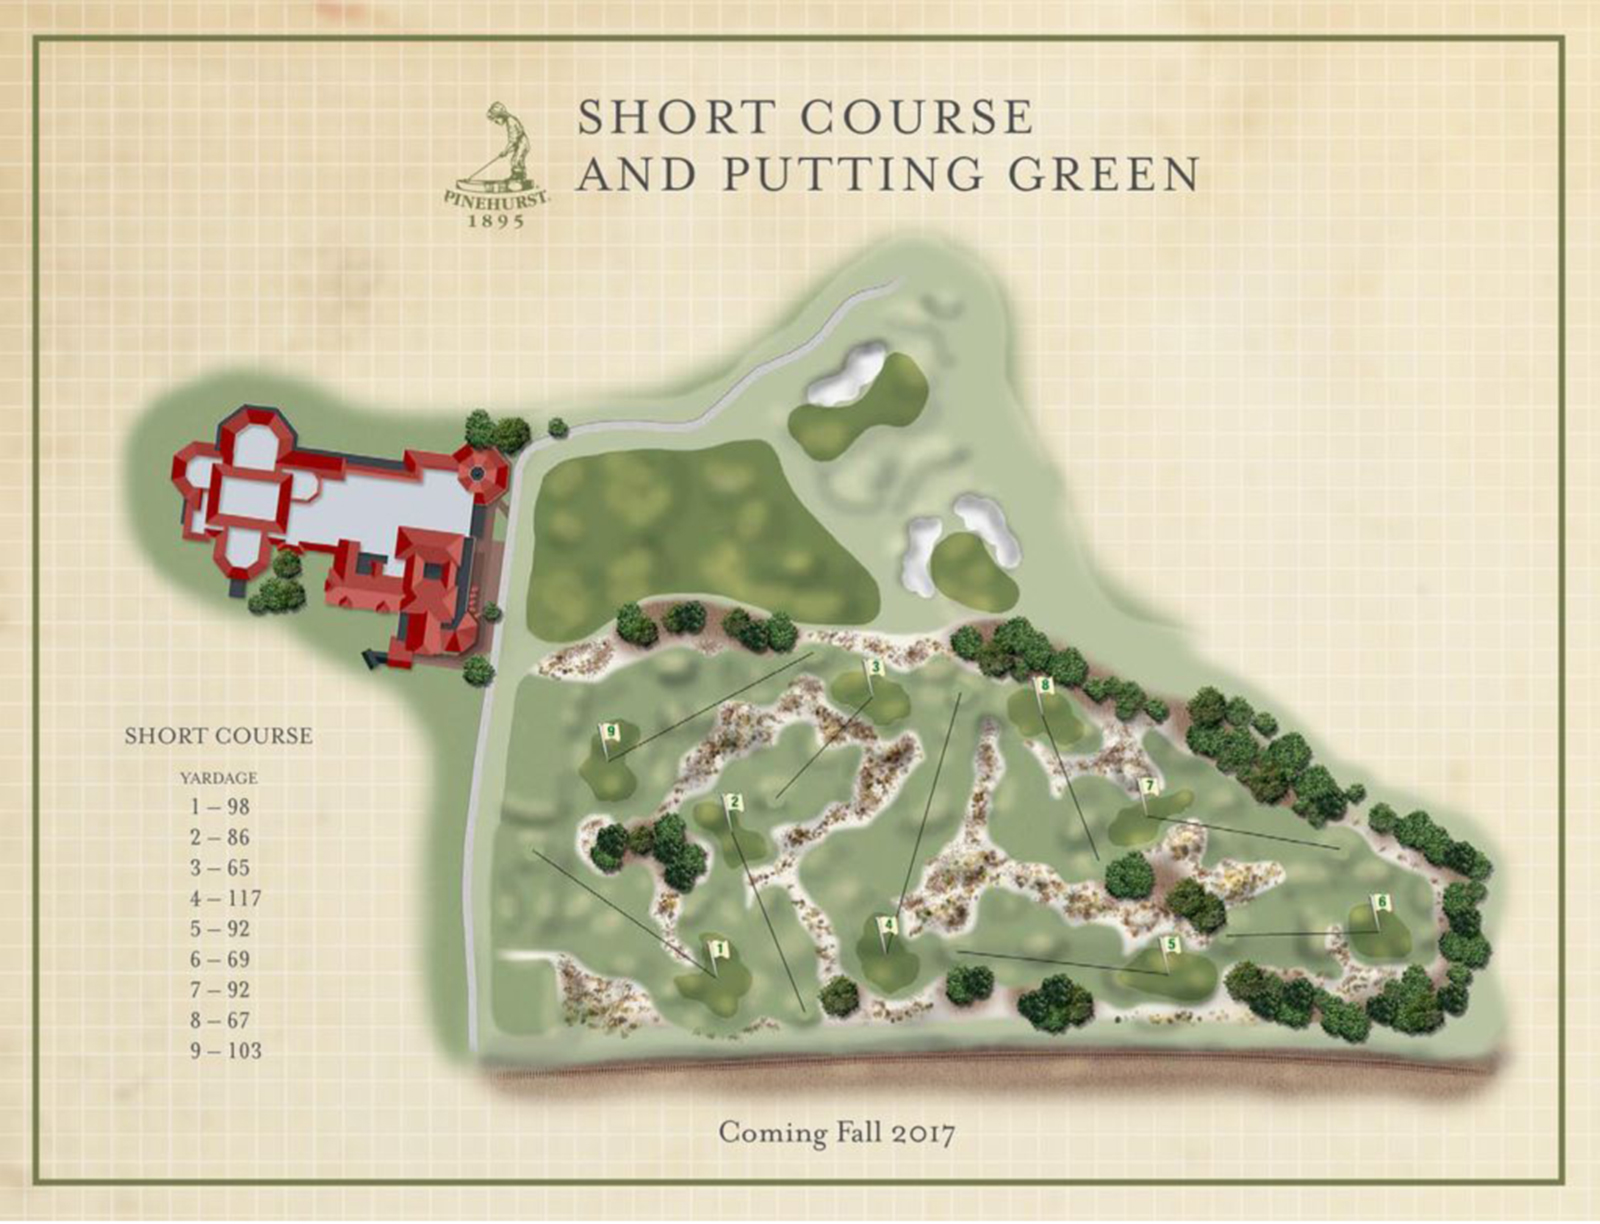 """Over 120 years after golf arrived at Pinehurst, the historic resort, often referred to as the Cradle of American Golf, will open """"The Cradle"""", a nine-hole course by golf architect Gil Hanse."""